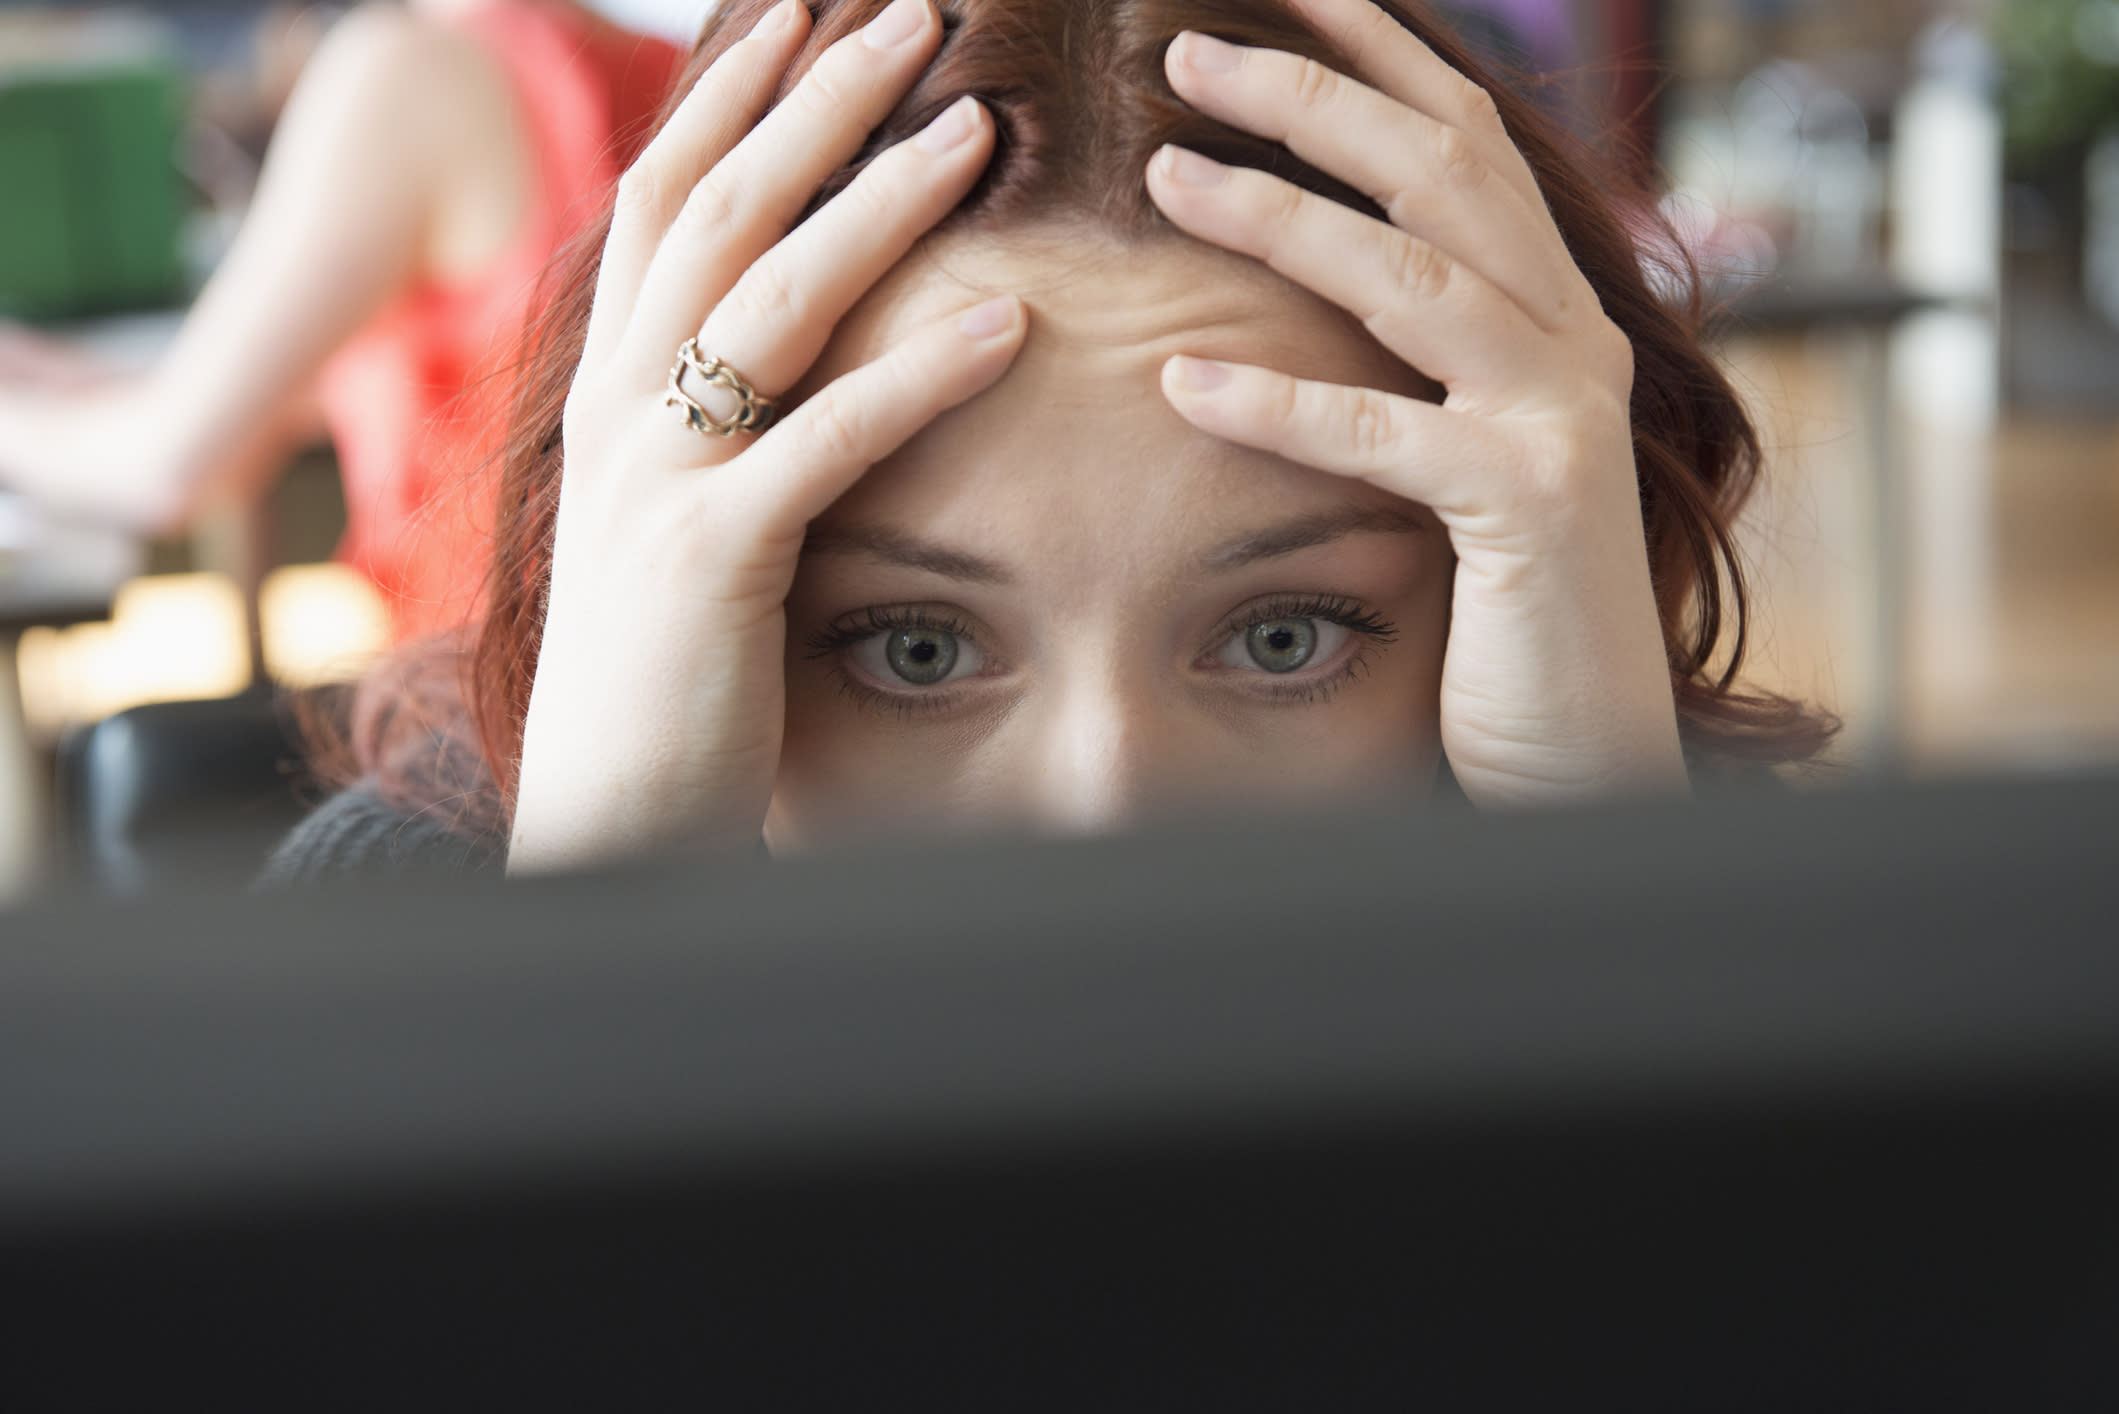 Doctor reveals 3 ways to beat back-to-work anxiety